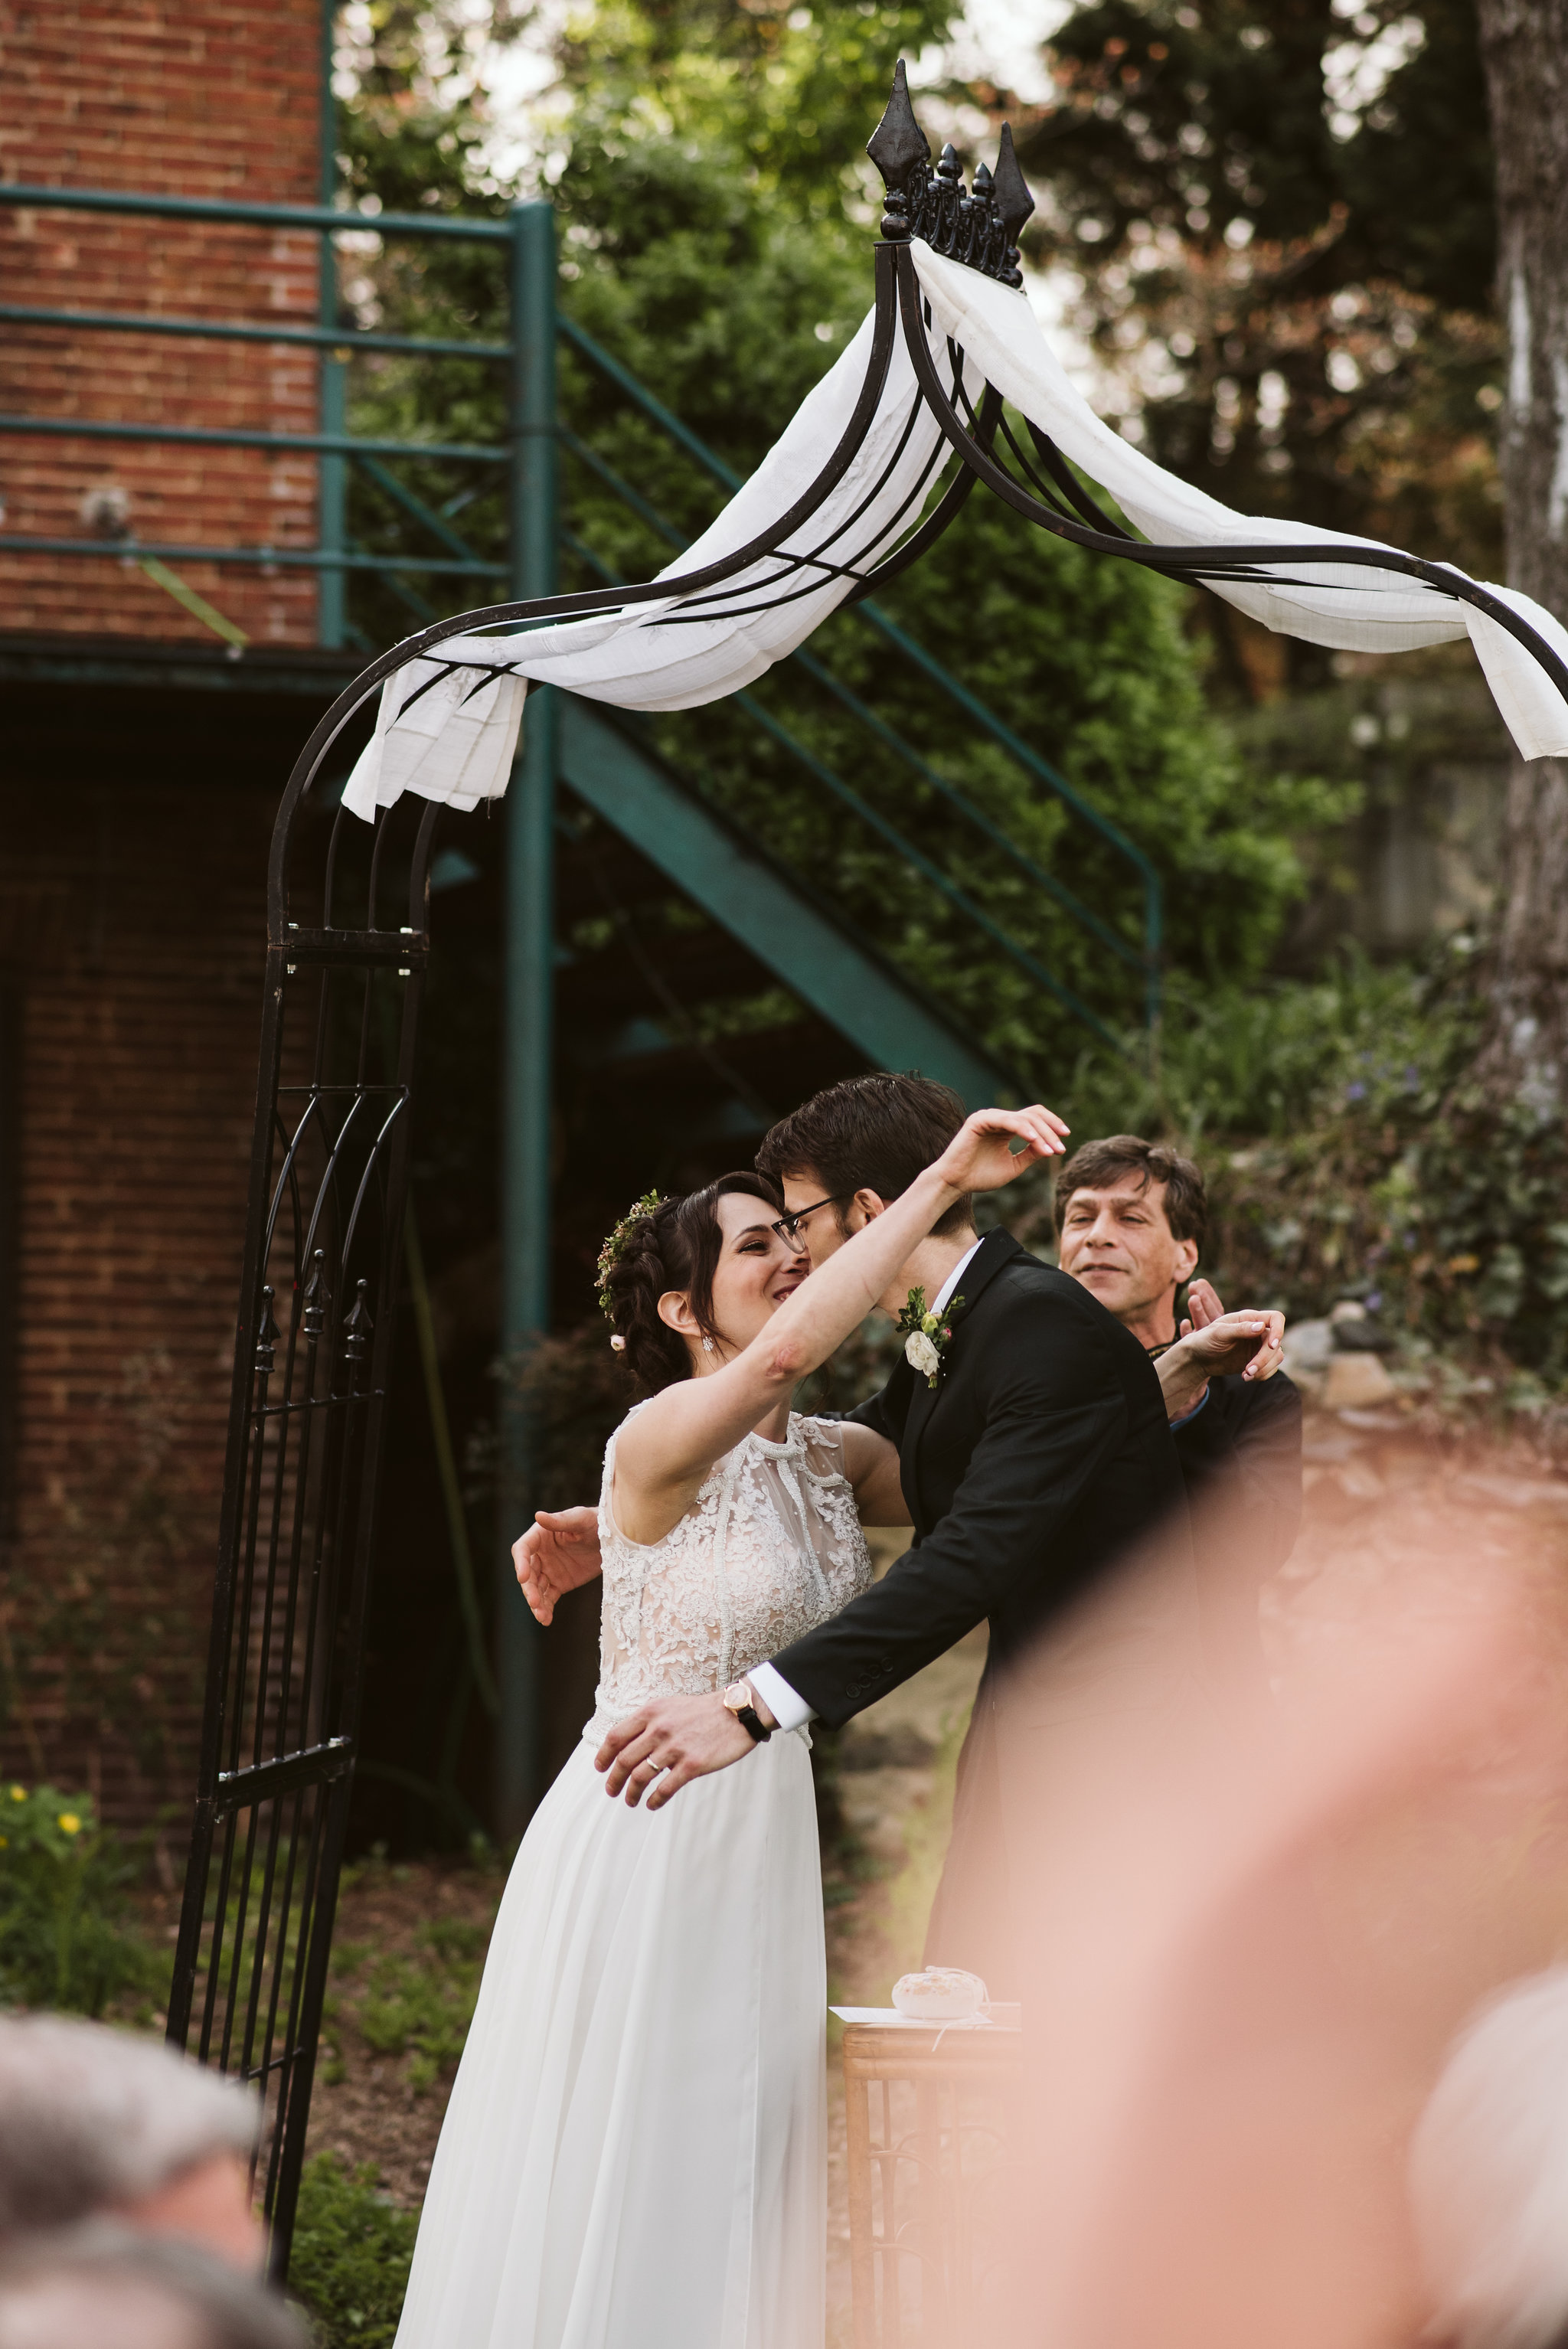 AllisonandDan'sWedding-333.jpg